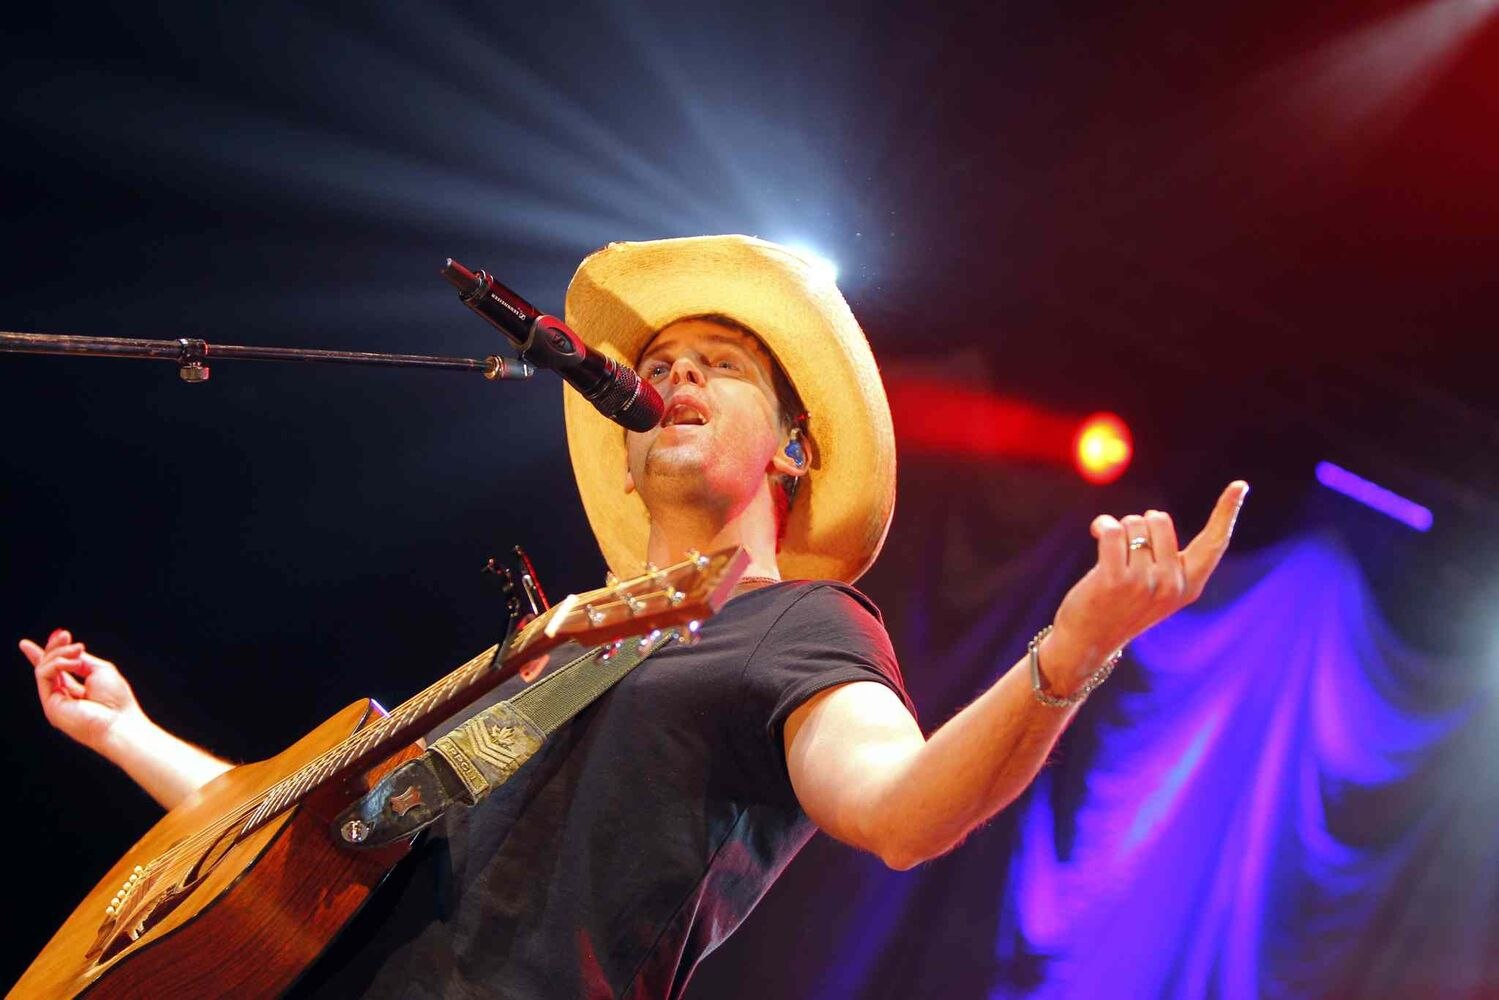 Canadian country music star Dean Brody, a seven-time Canadian Country Music Award winner, put on a show for Winnipeg fans at MTS Centre Wednesday. (Boris Minkevich / Winnipeg Free Press)